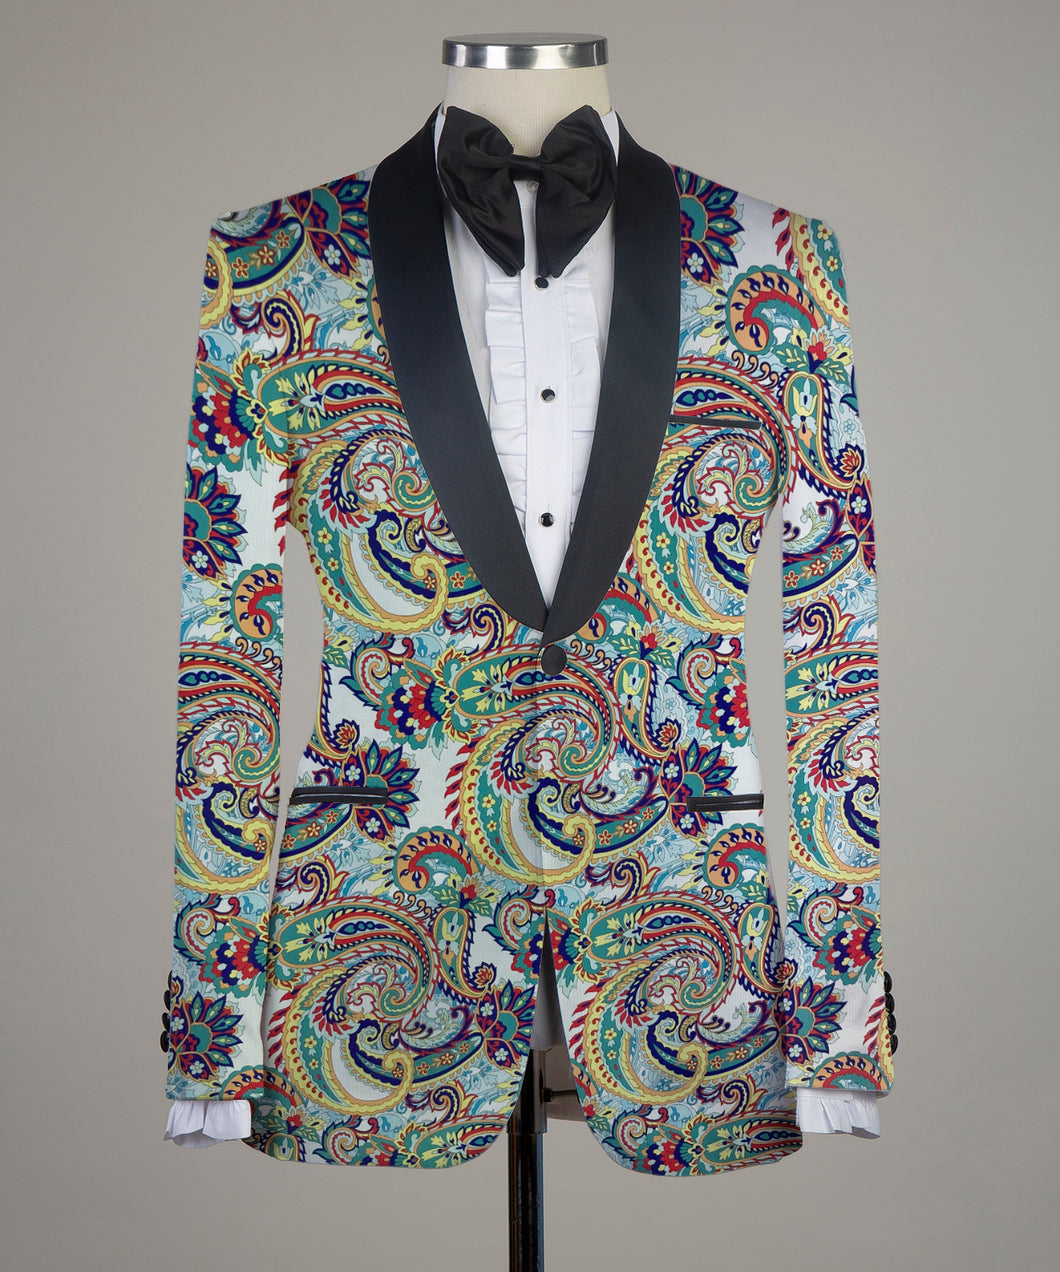 Digital Printed Paisley Colorful 2 Pieces Tuxedo